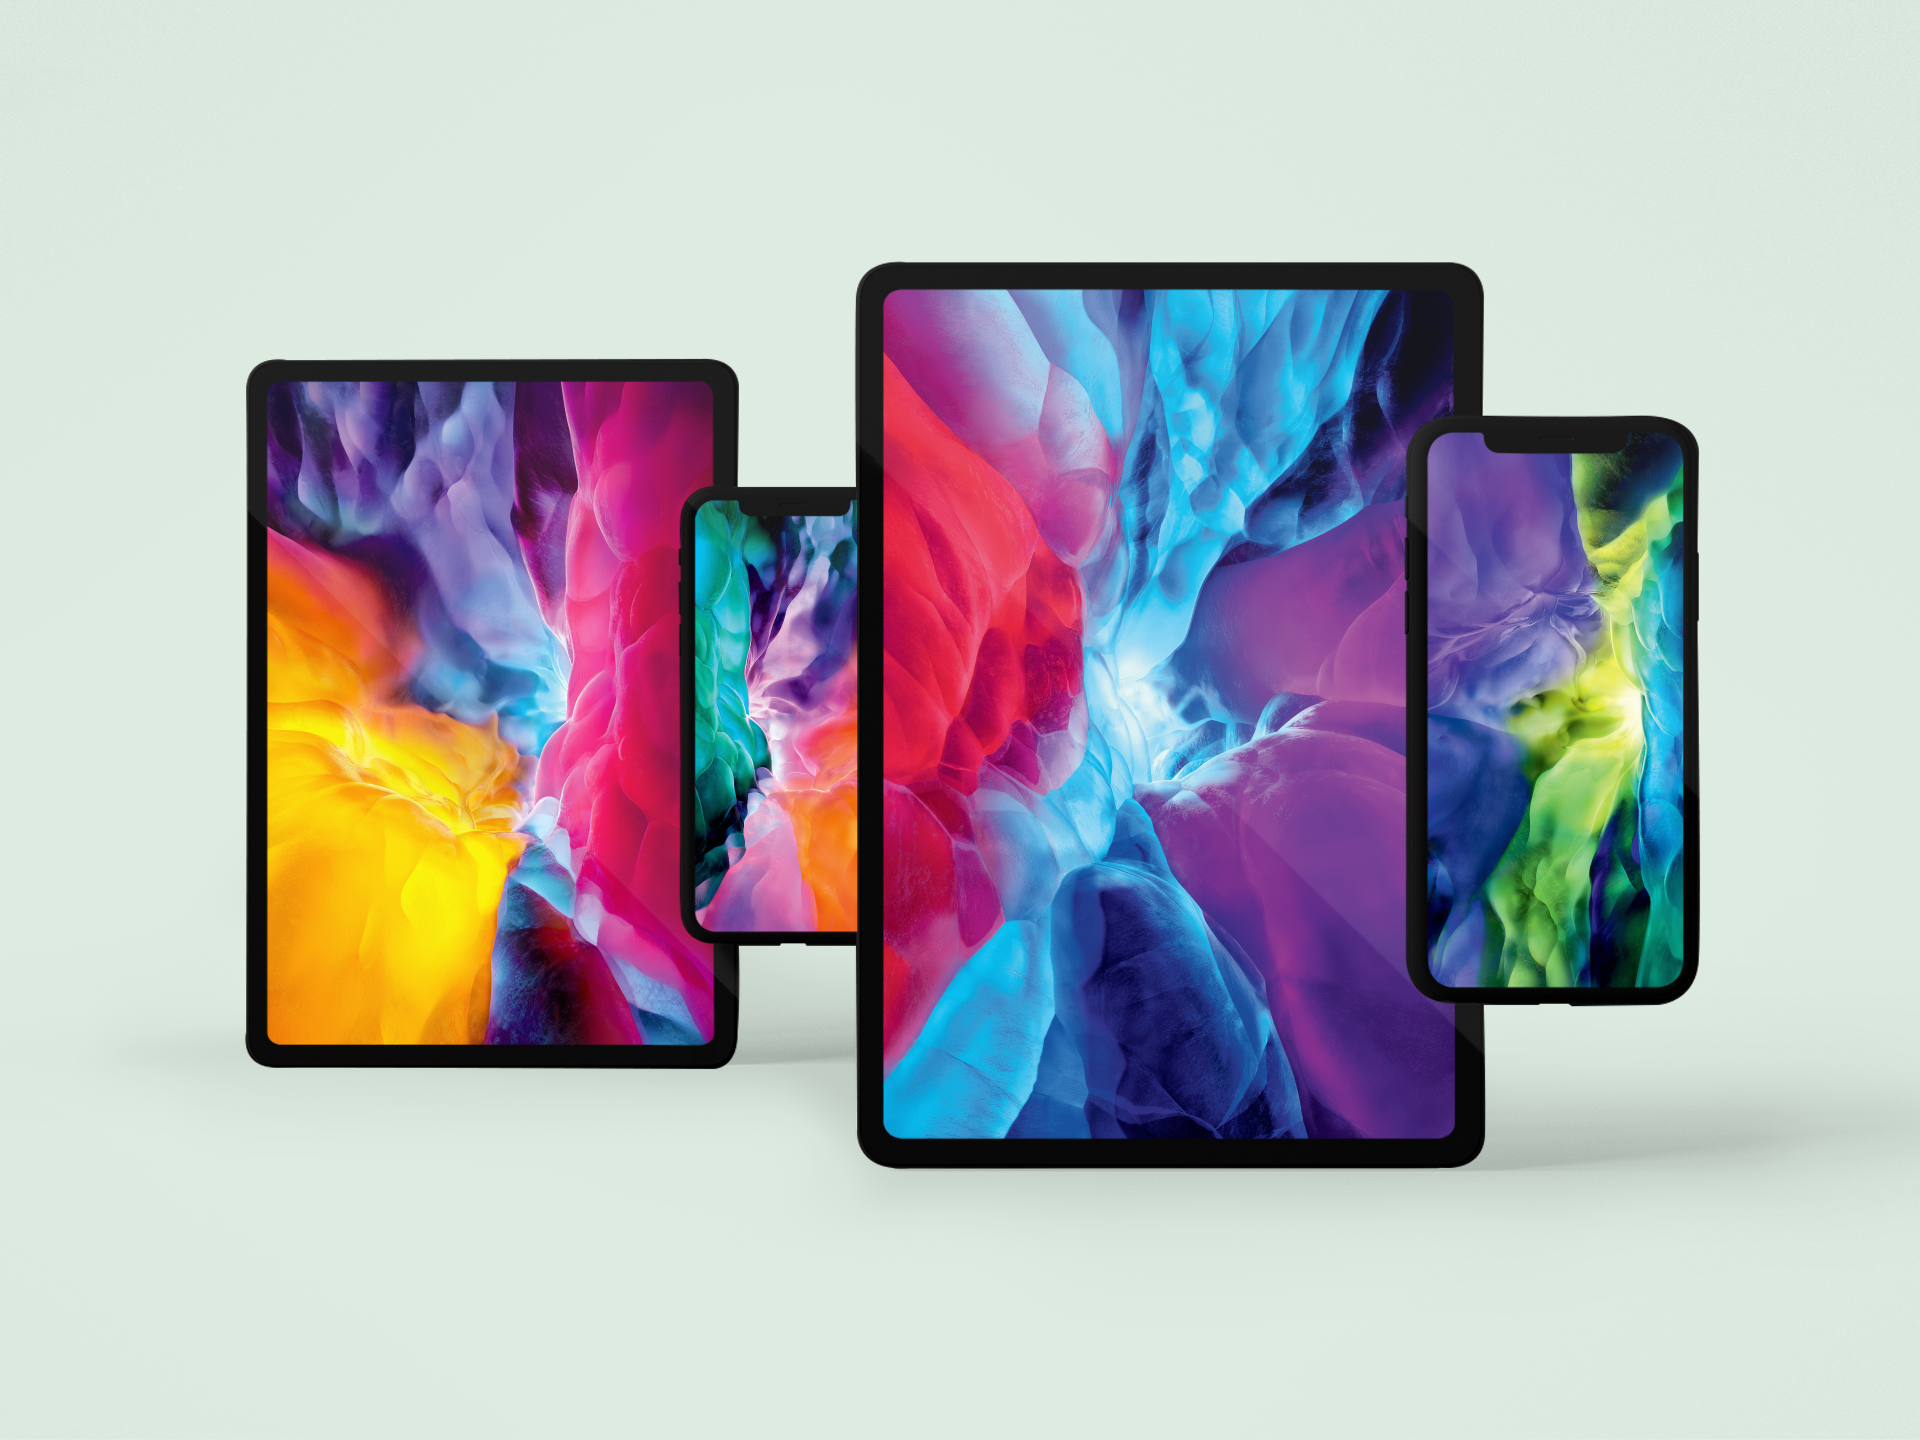 The New Ipad Pro Wallpapers For Ipad Iphone Desktop